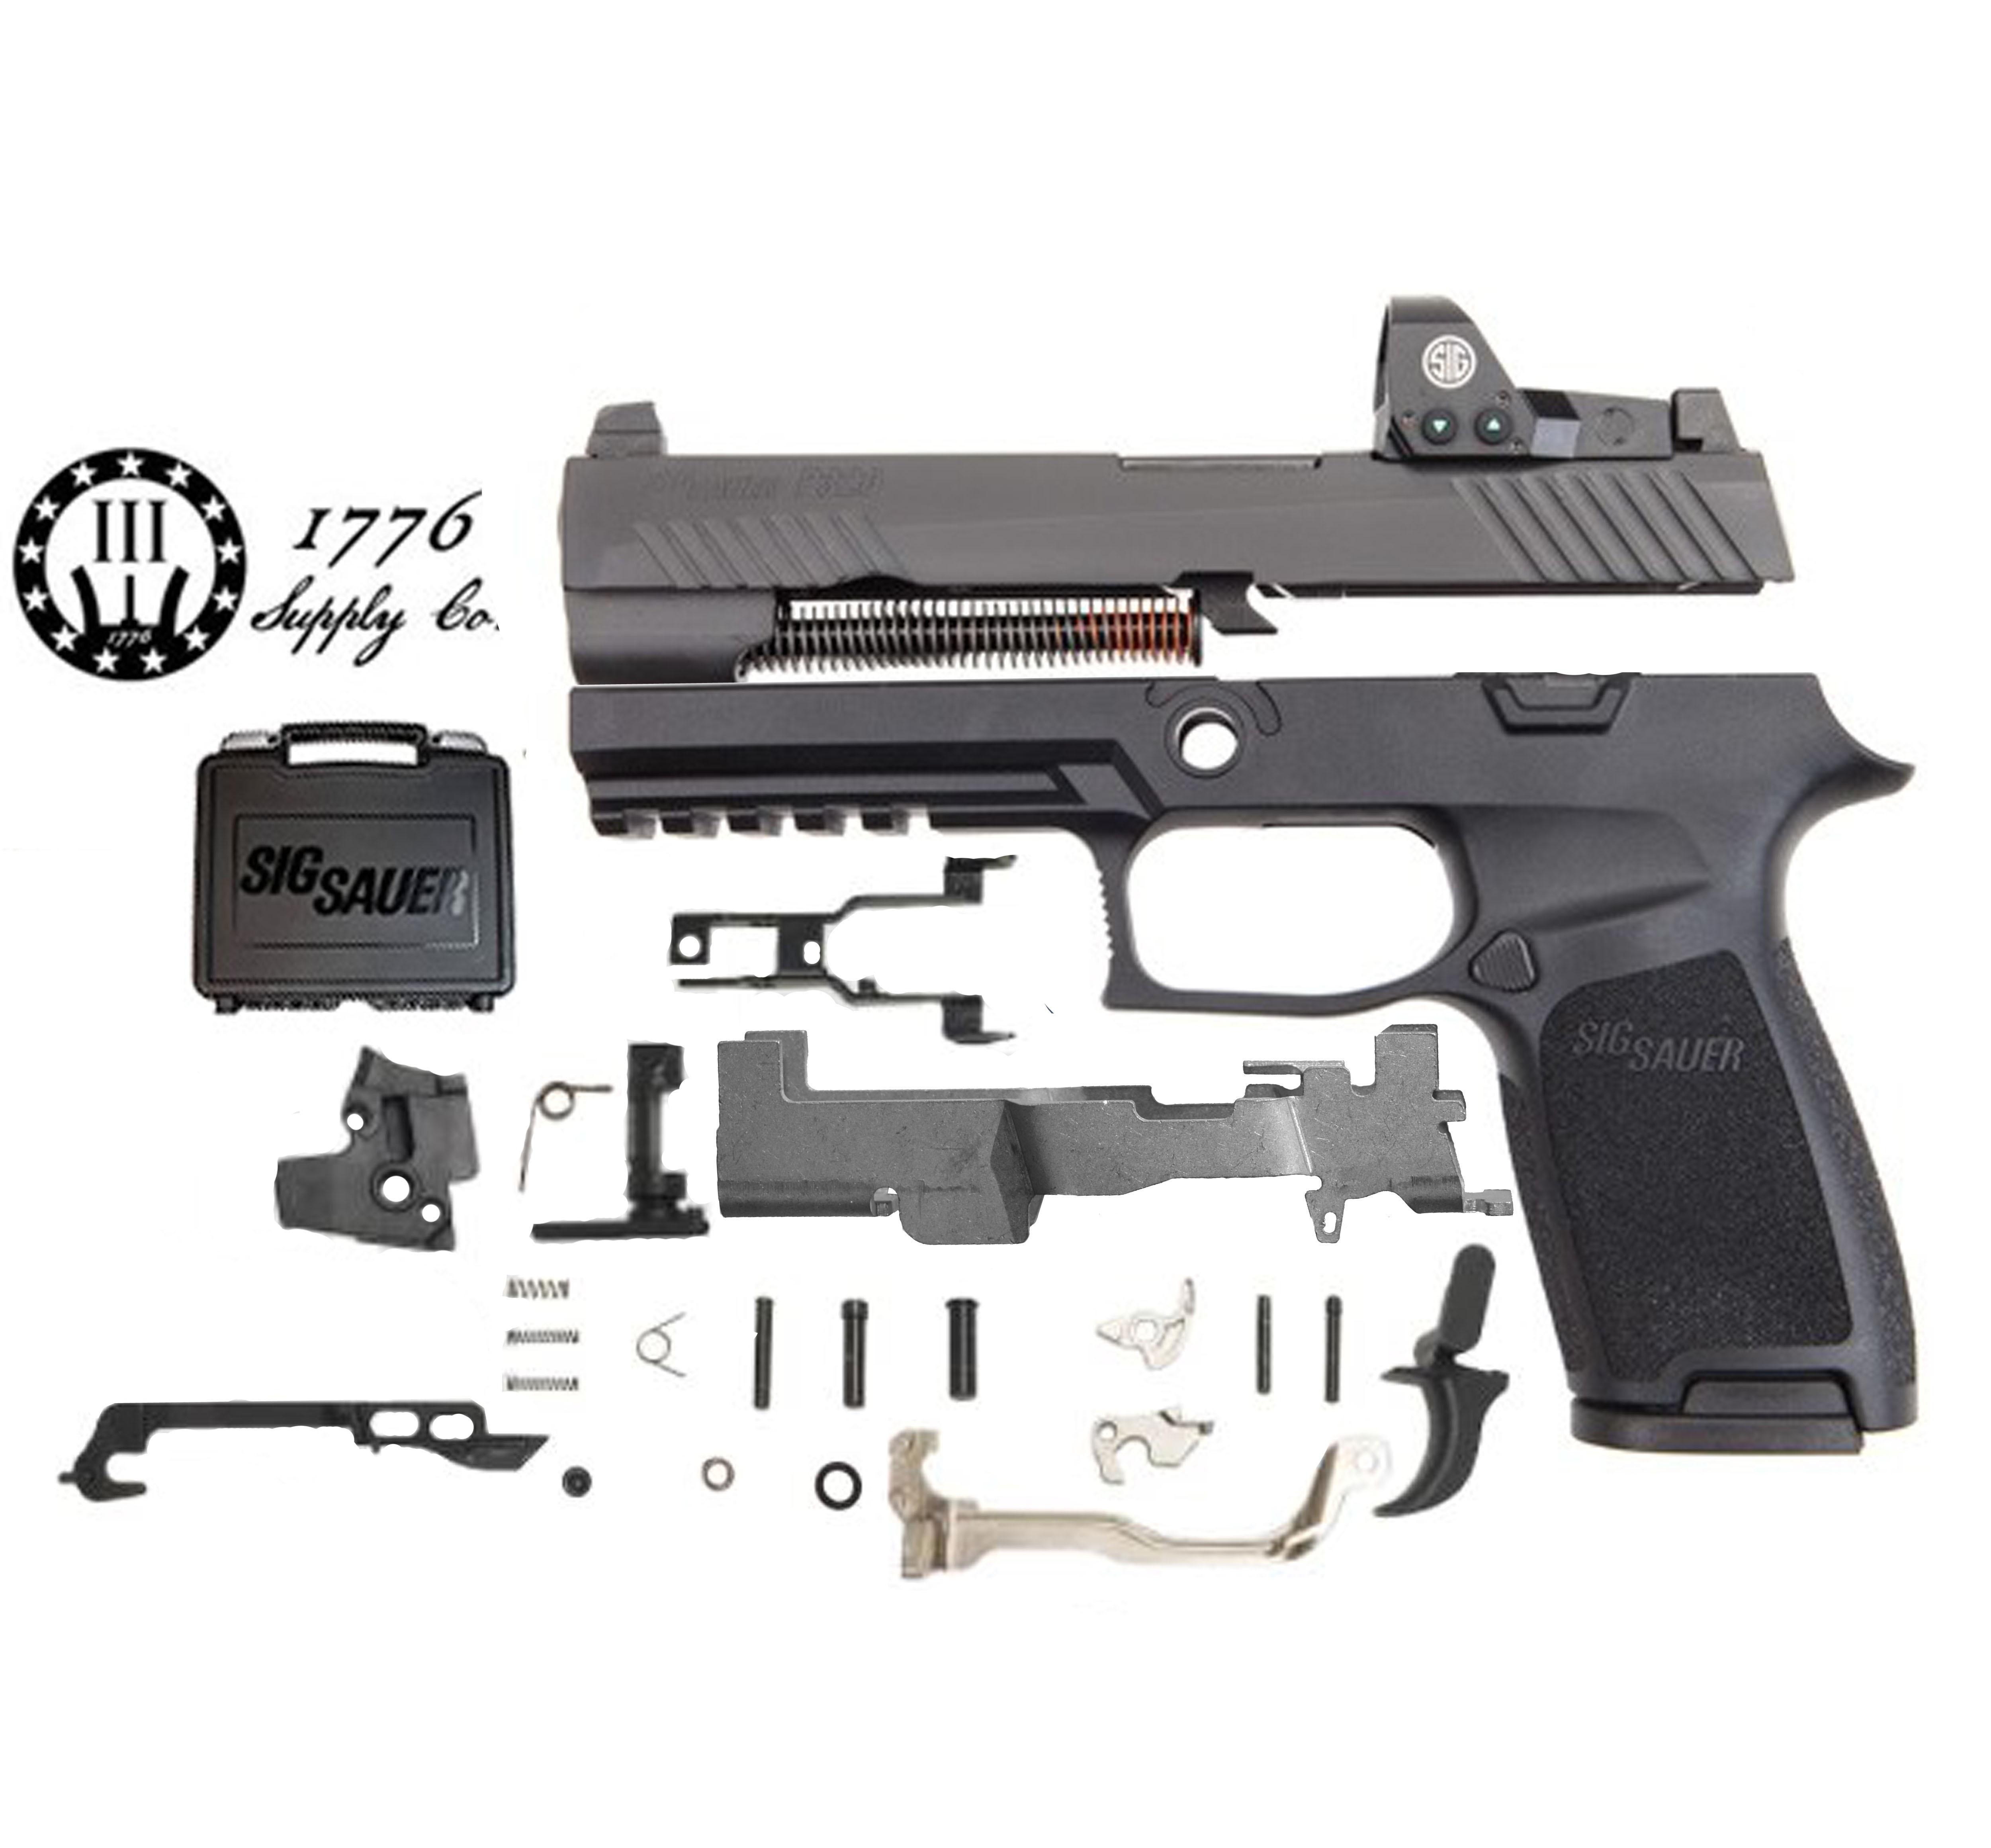 P320 full size RX complete kit